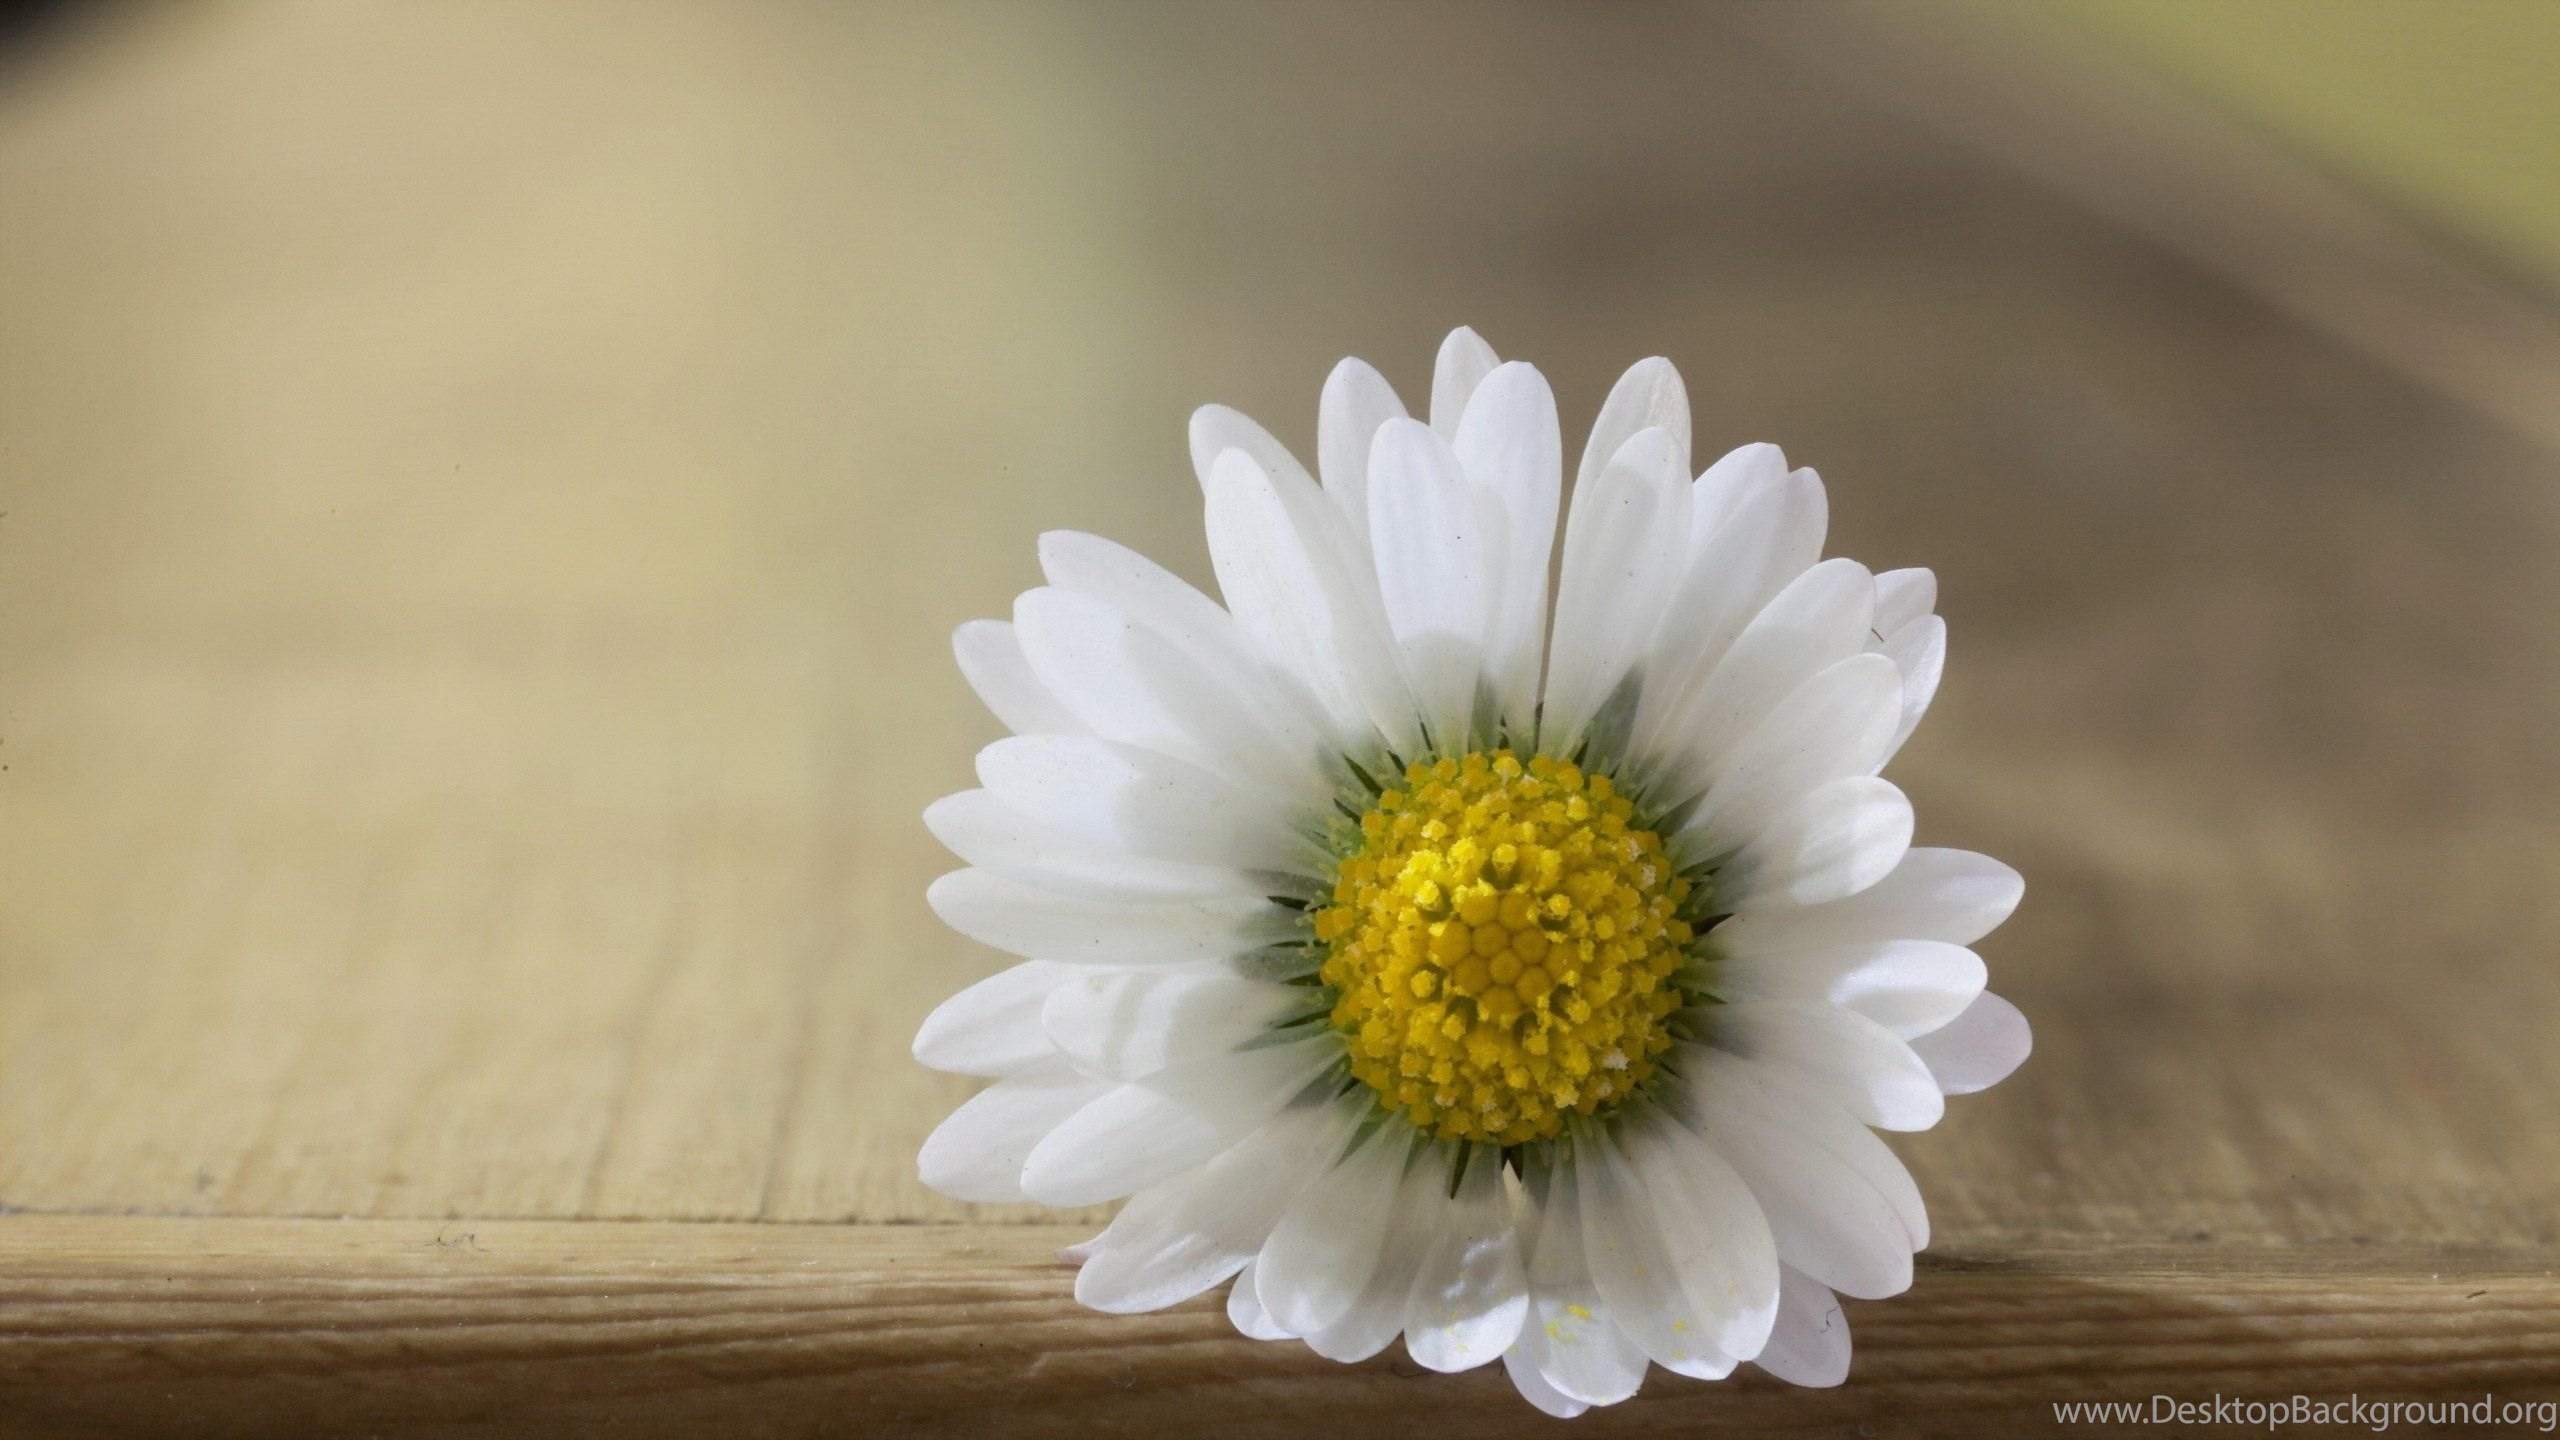 Close Up White Daisy Flower With White Petals Yellow Pistil Desktop